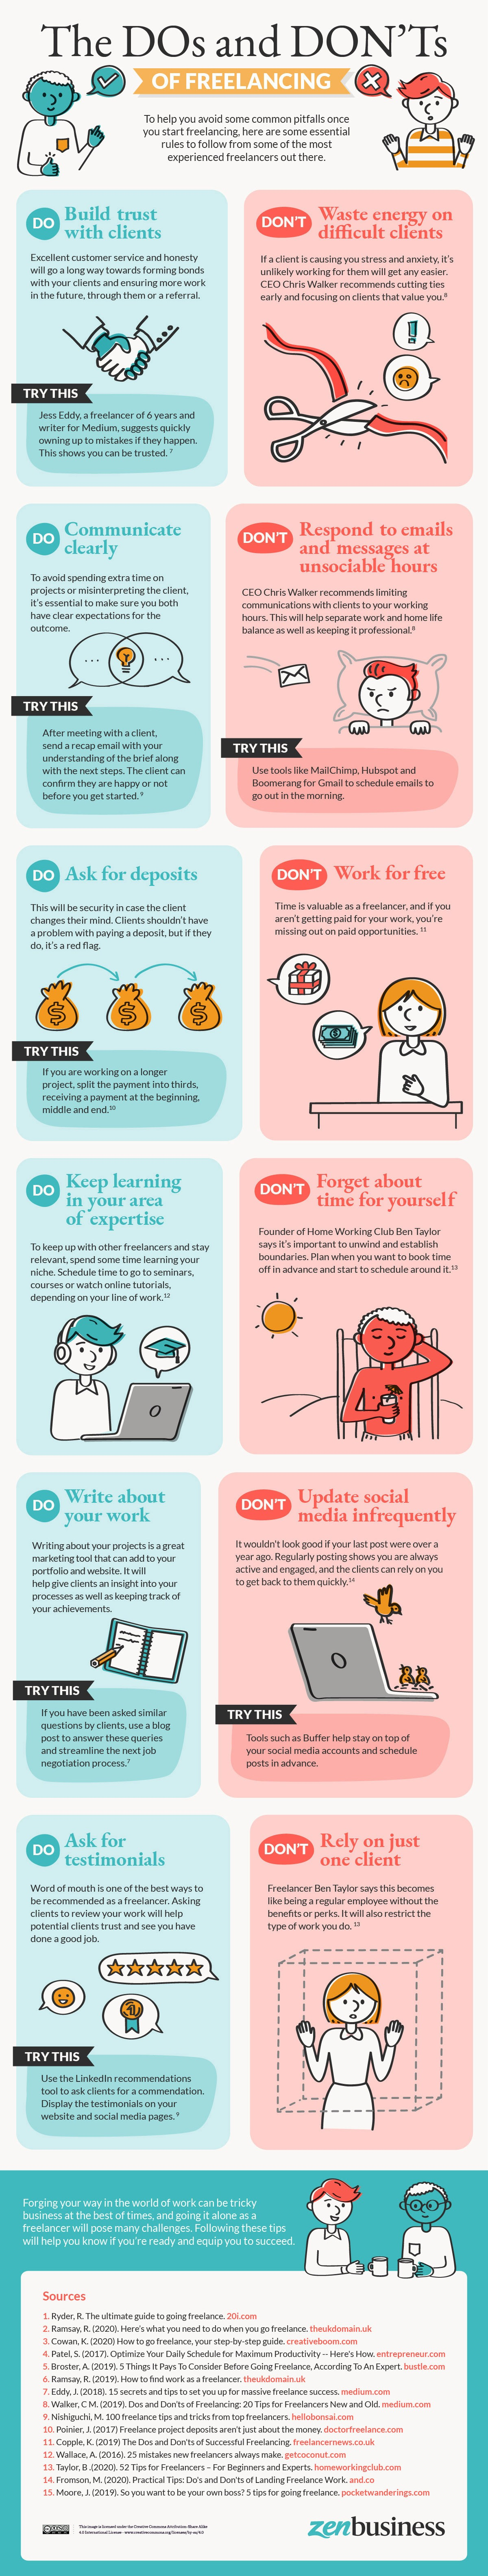 Infographic on the dos and don'ts of freelance work.